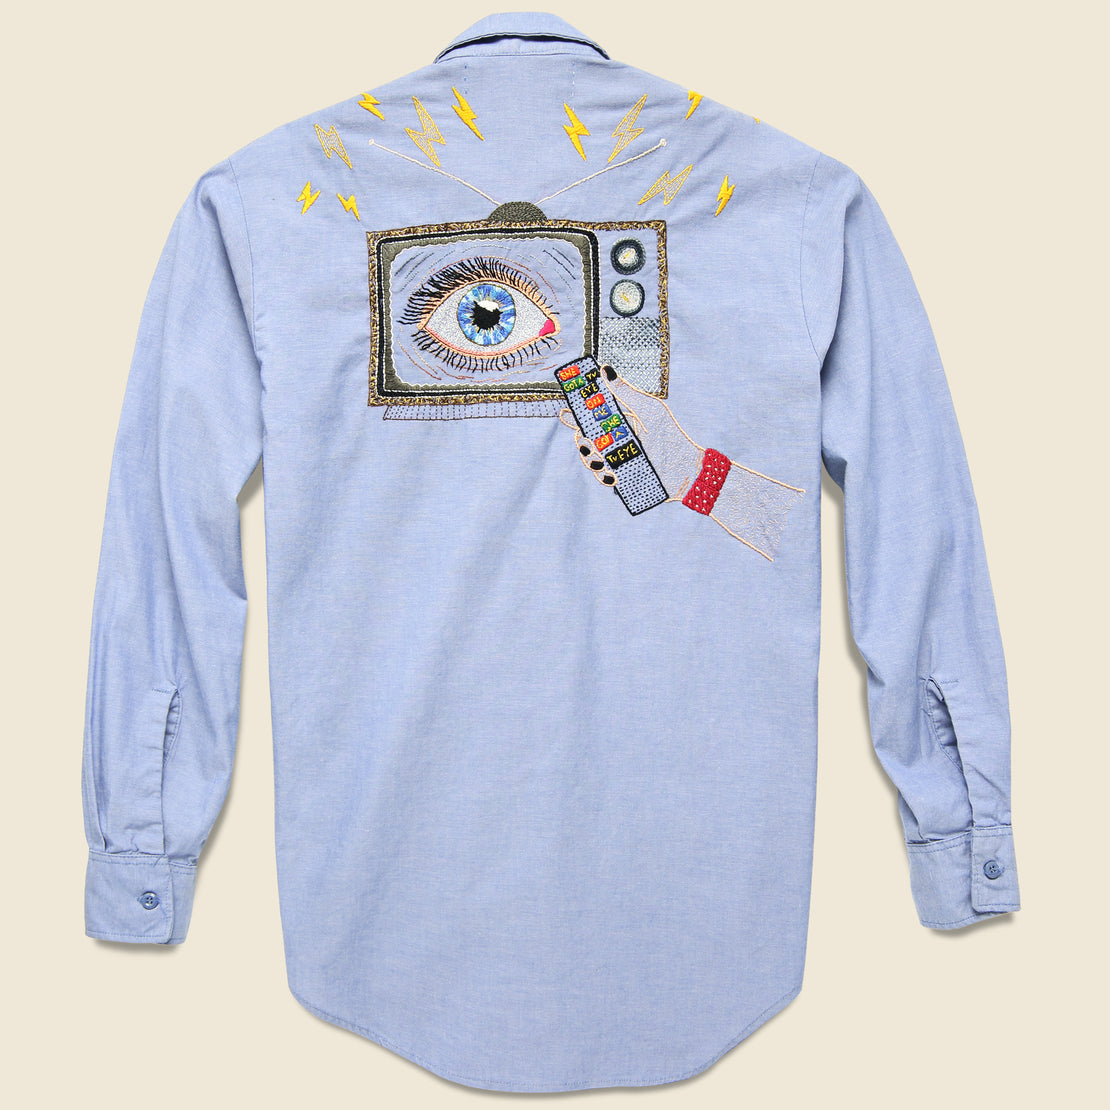 Jolly Knot Club Embroidered Chambray Shirt - She Got a TV Eye on Me